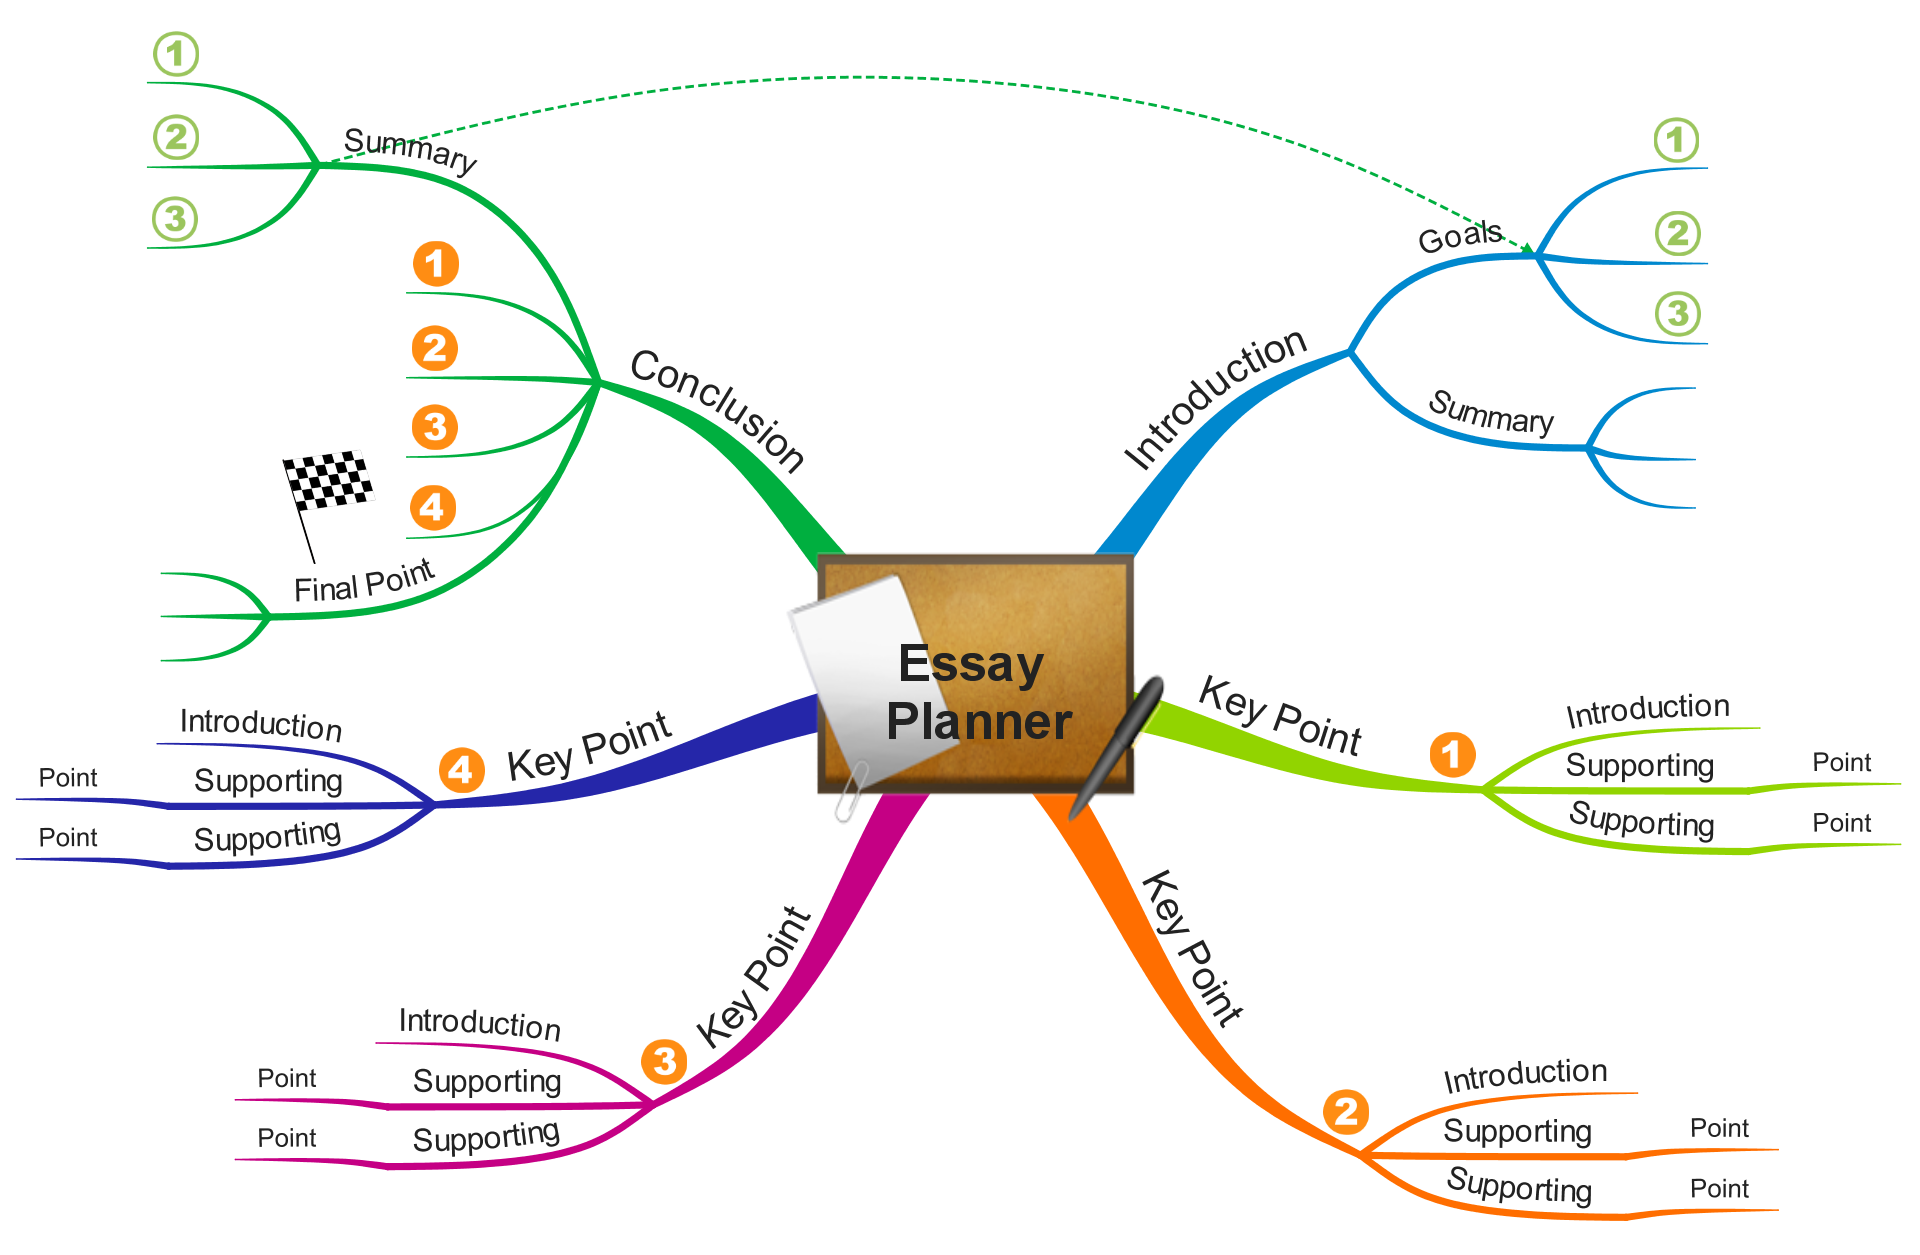 Essay Planning Mind Map